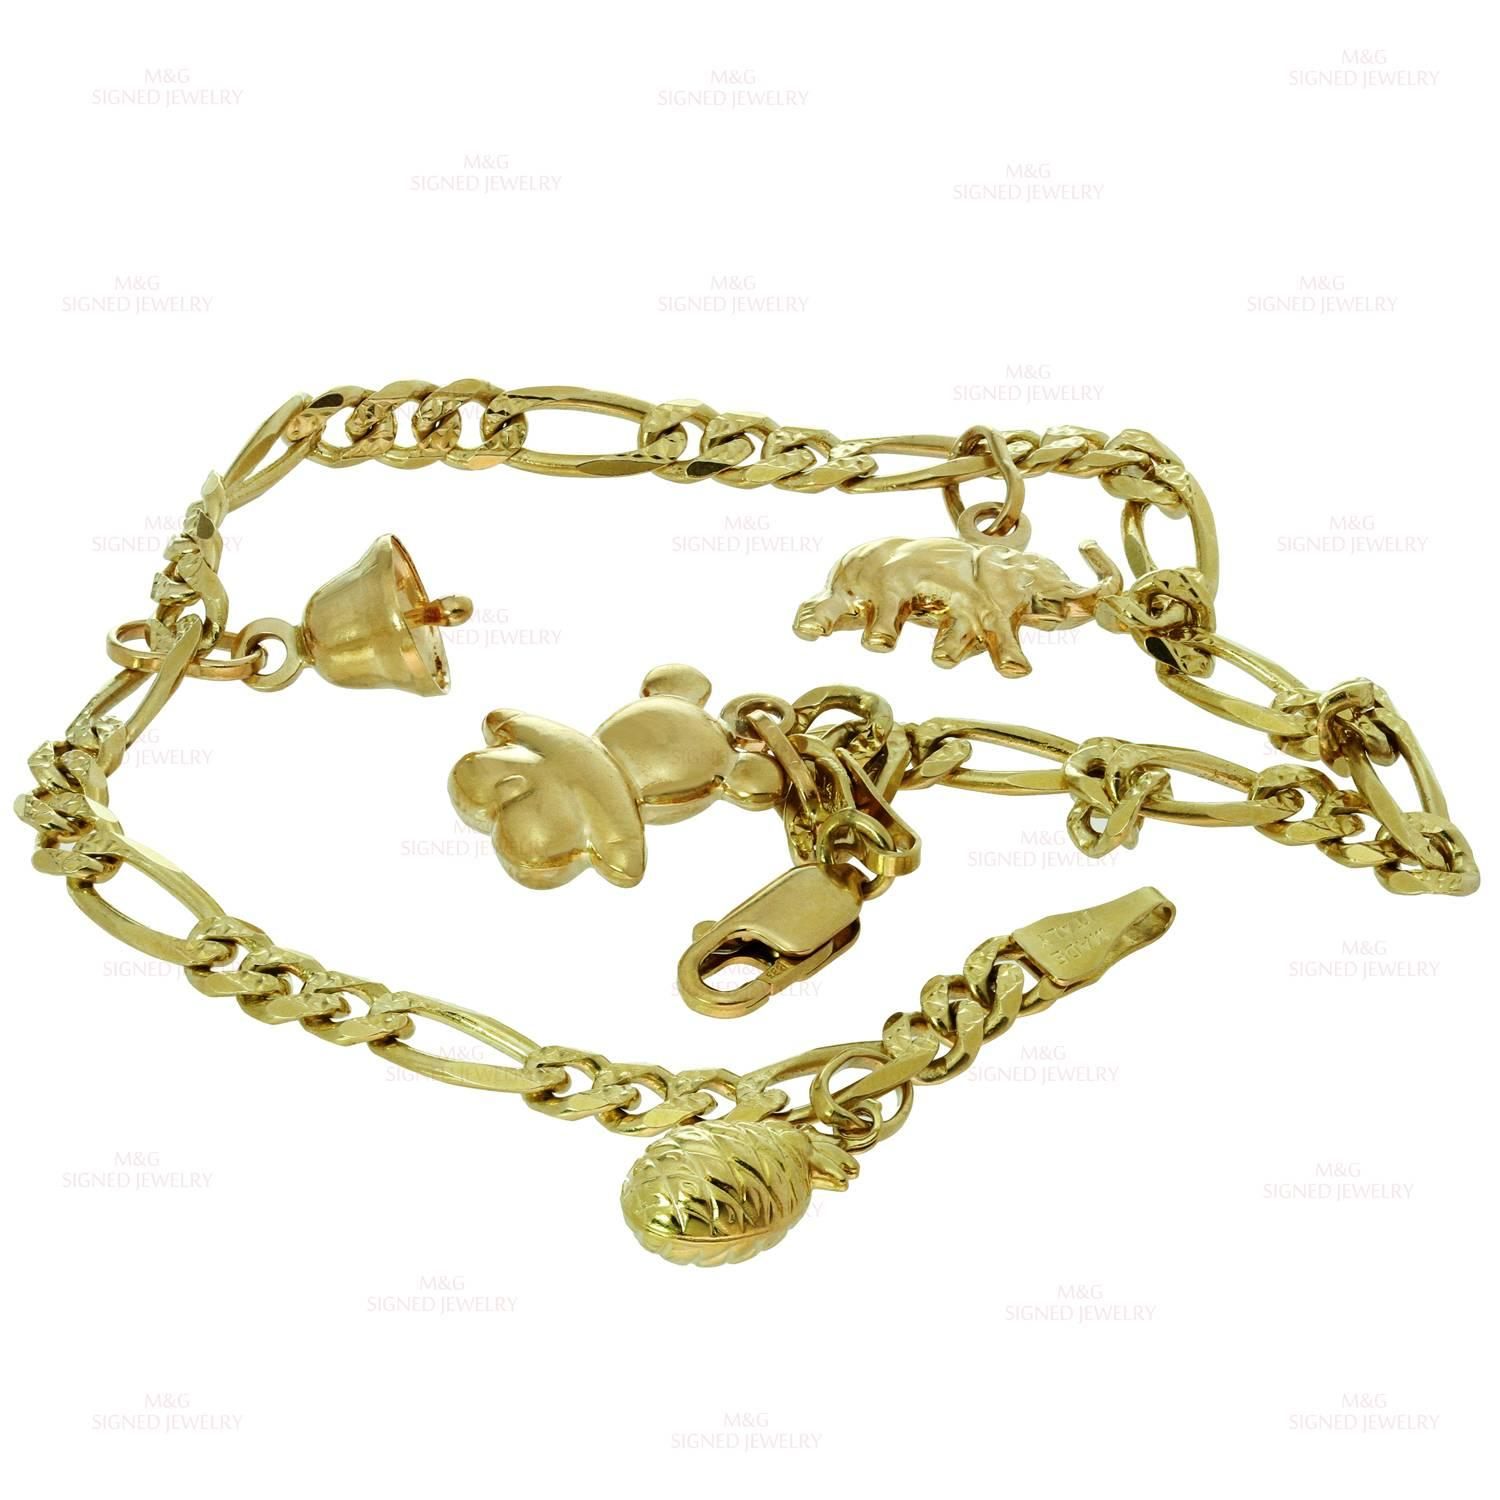 cross bracelet karat res inflowcomponent global anklet eternal ankle s p plate ankh content cancel cleopatra inflow egyptian gold